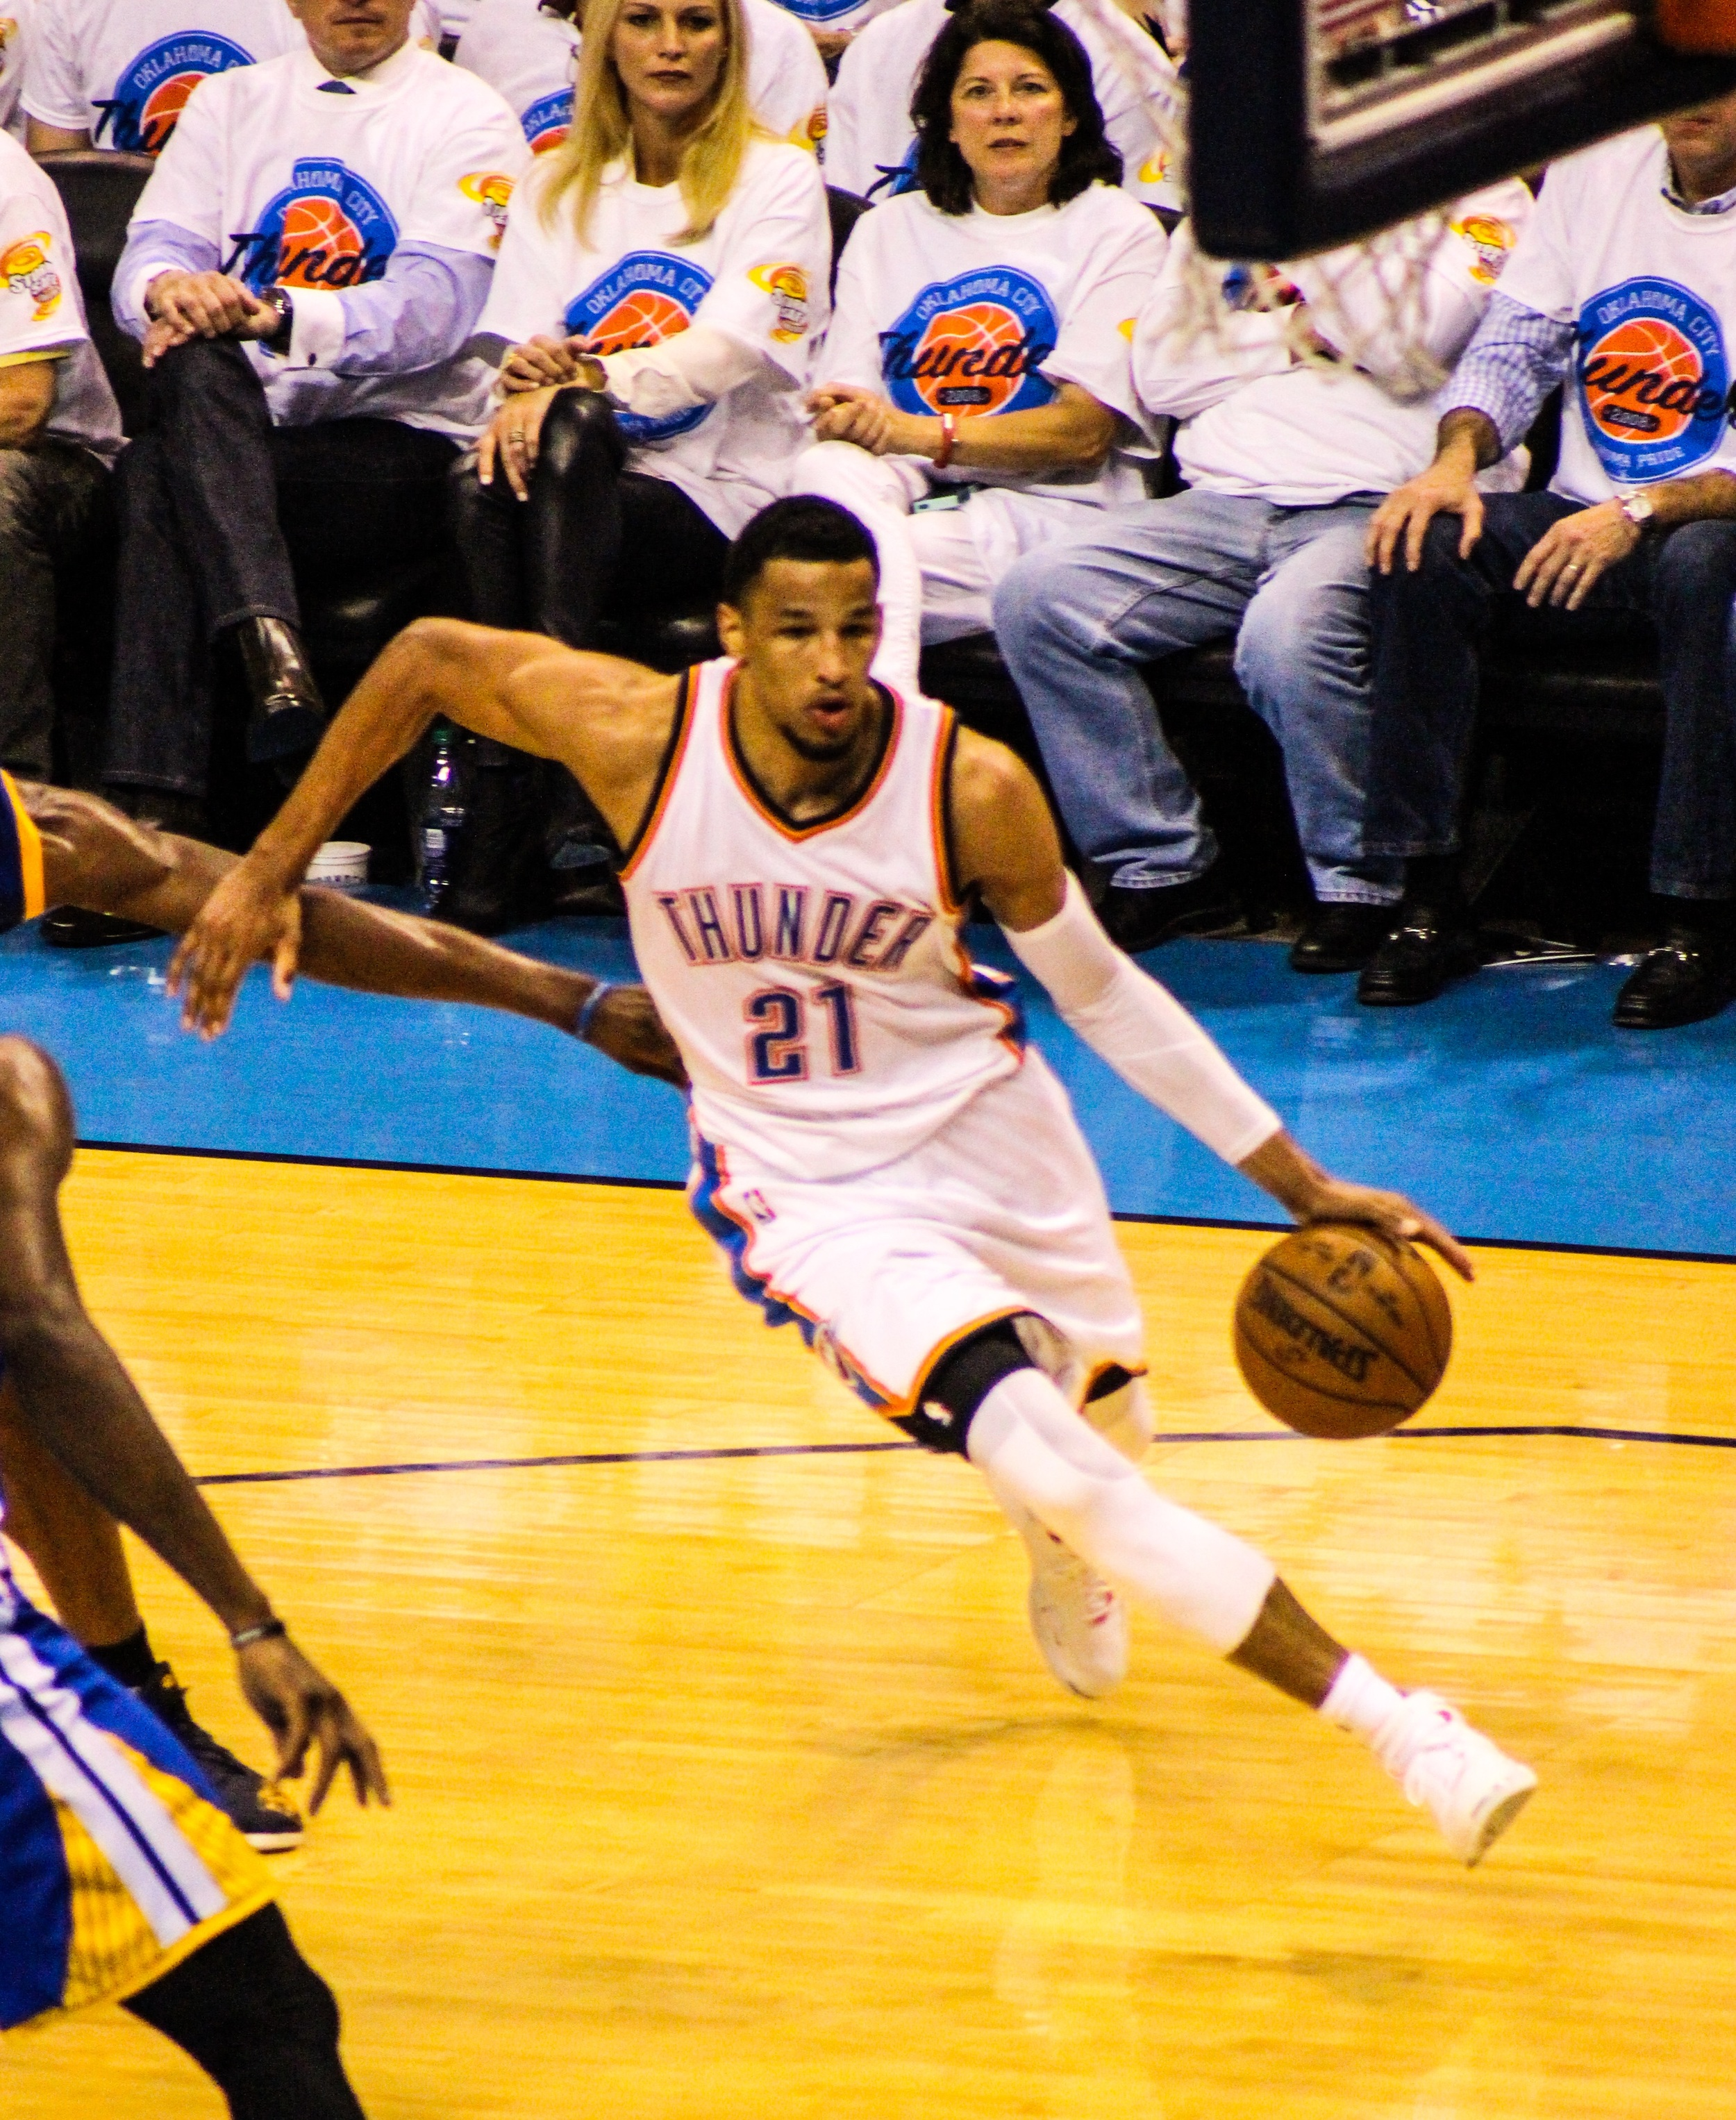 Thunder guard Andre Roberson drives toward the basket during Game 4 of the Western Conference Finals at Chesapeake Energy Arena in Oklahoma City. (Photo By Sam Murch/InsideThunder.com)